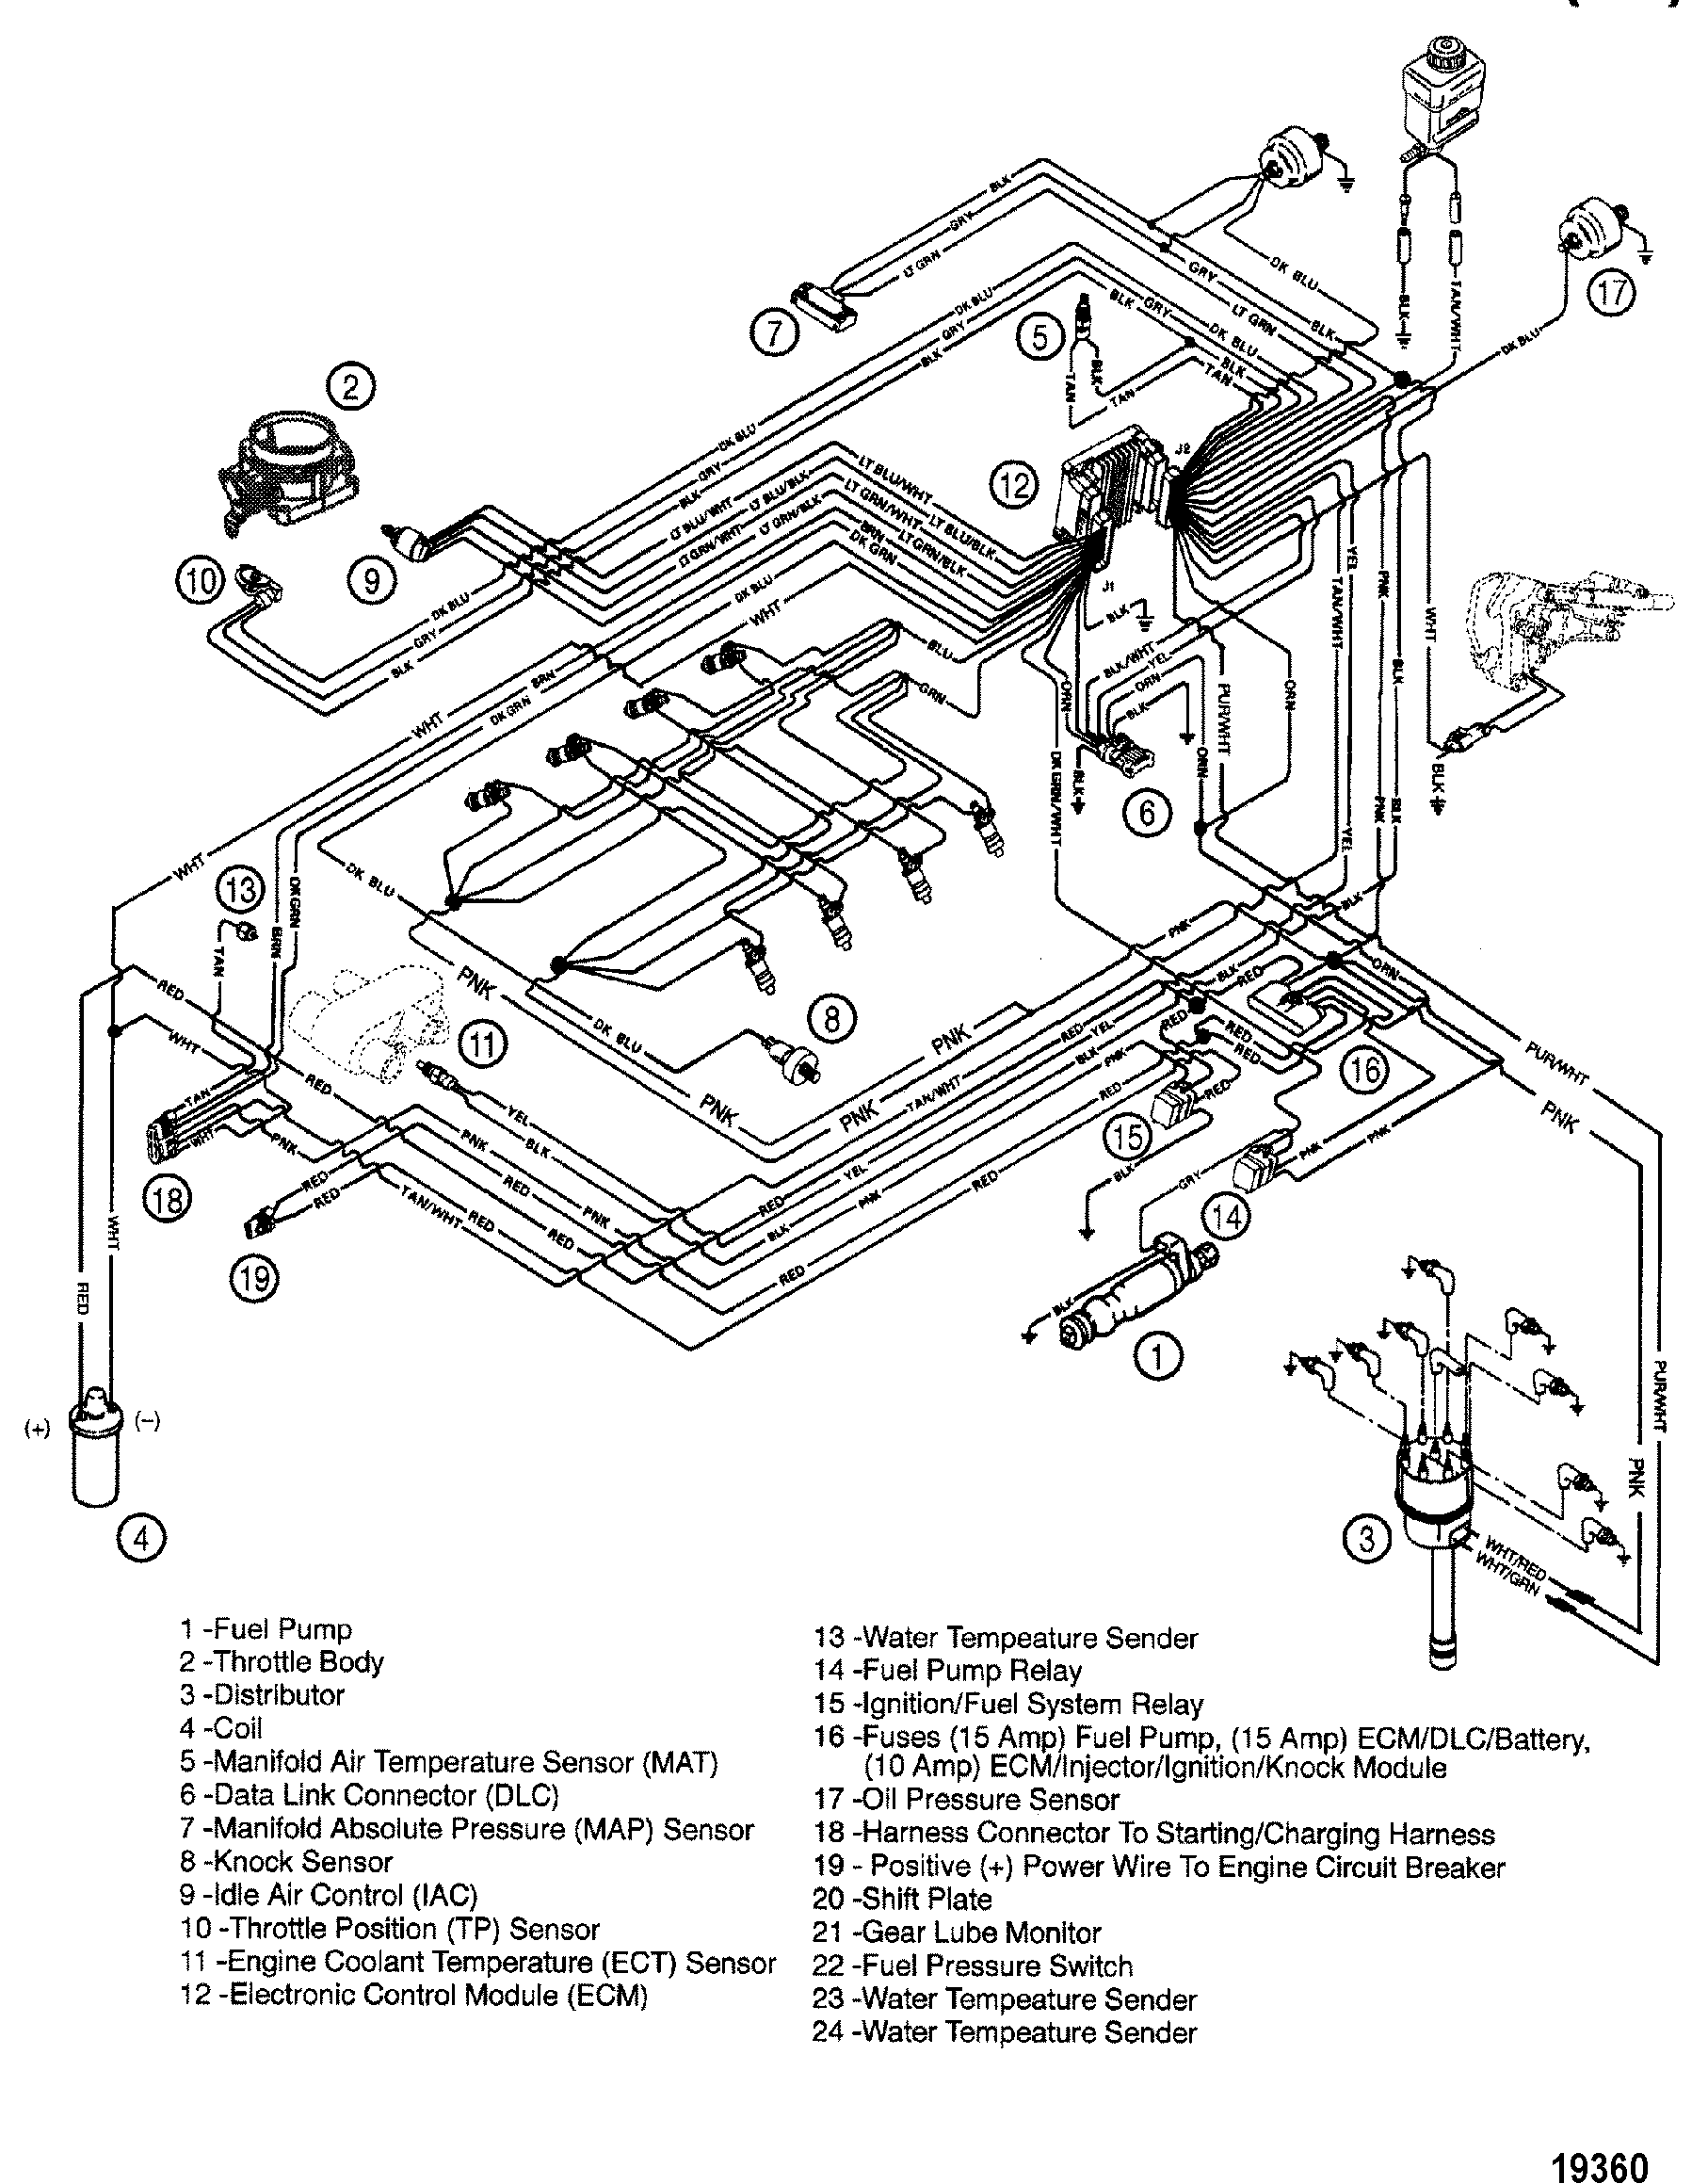 mad jax inverter wiring diagram great installation of wiring diagram 36 Volt Battery Wiring Diagram mad jax inverter wiring diagram wiring library rh 31 kaufmed de rv inverter wiring diagram rv